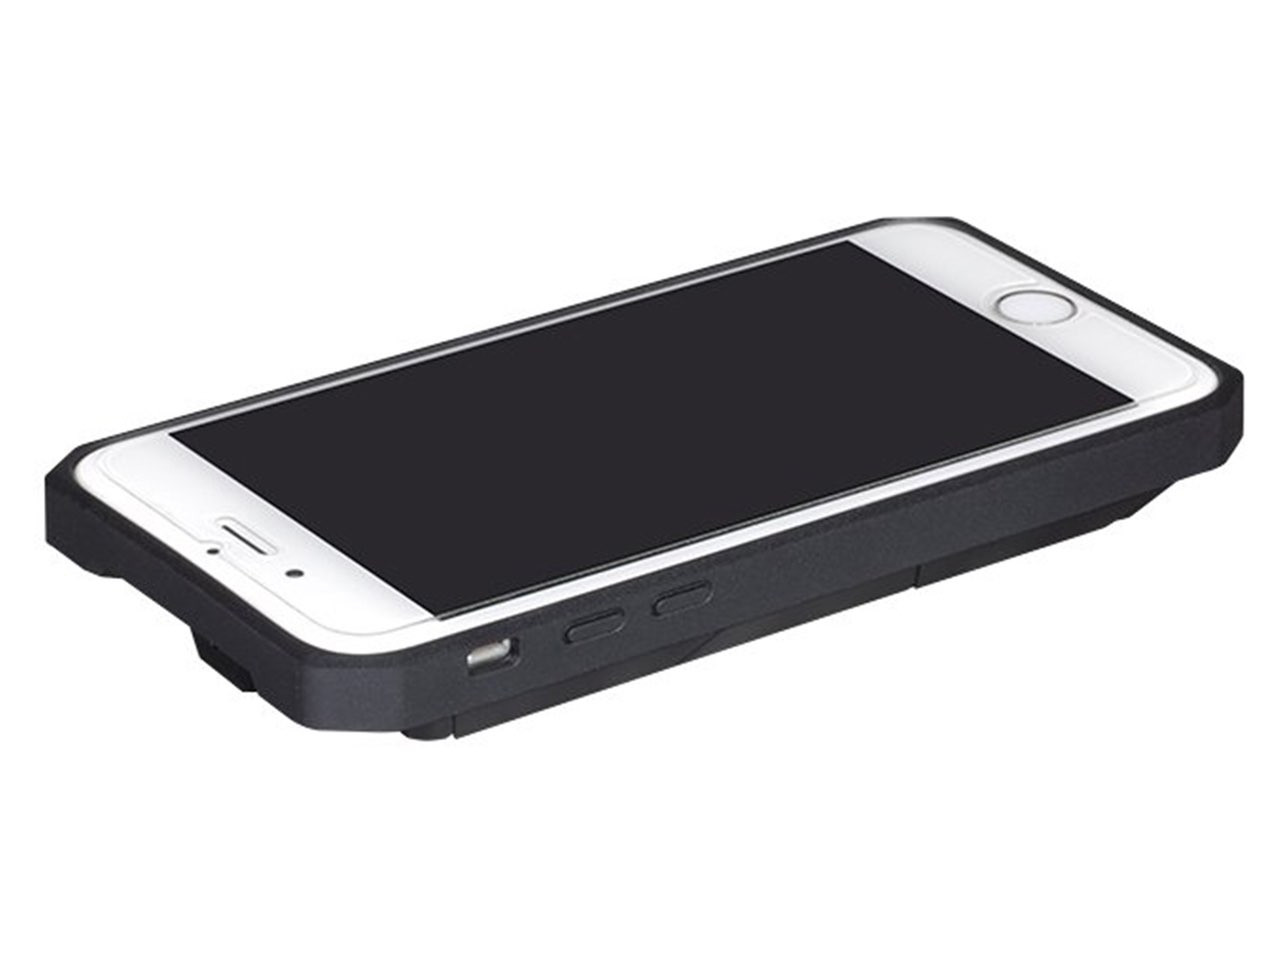 iPhone 6 Charging Case WiFi Hidden Camera by Lawmate